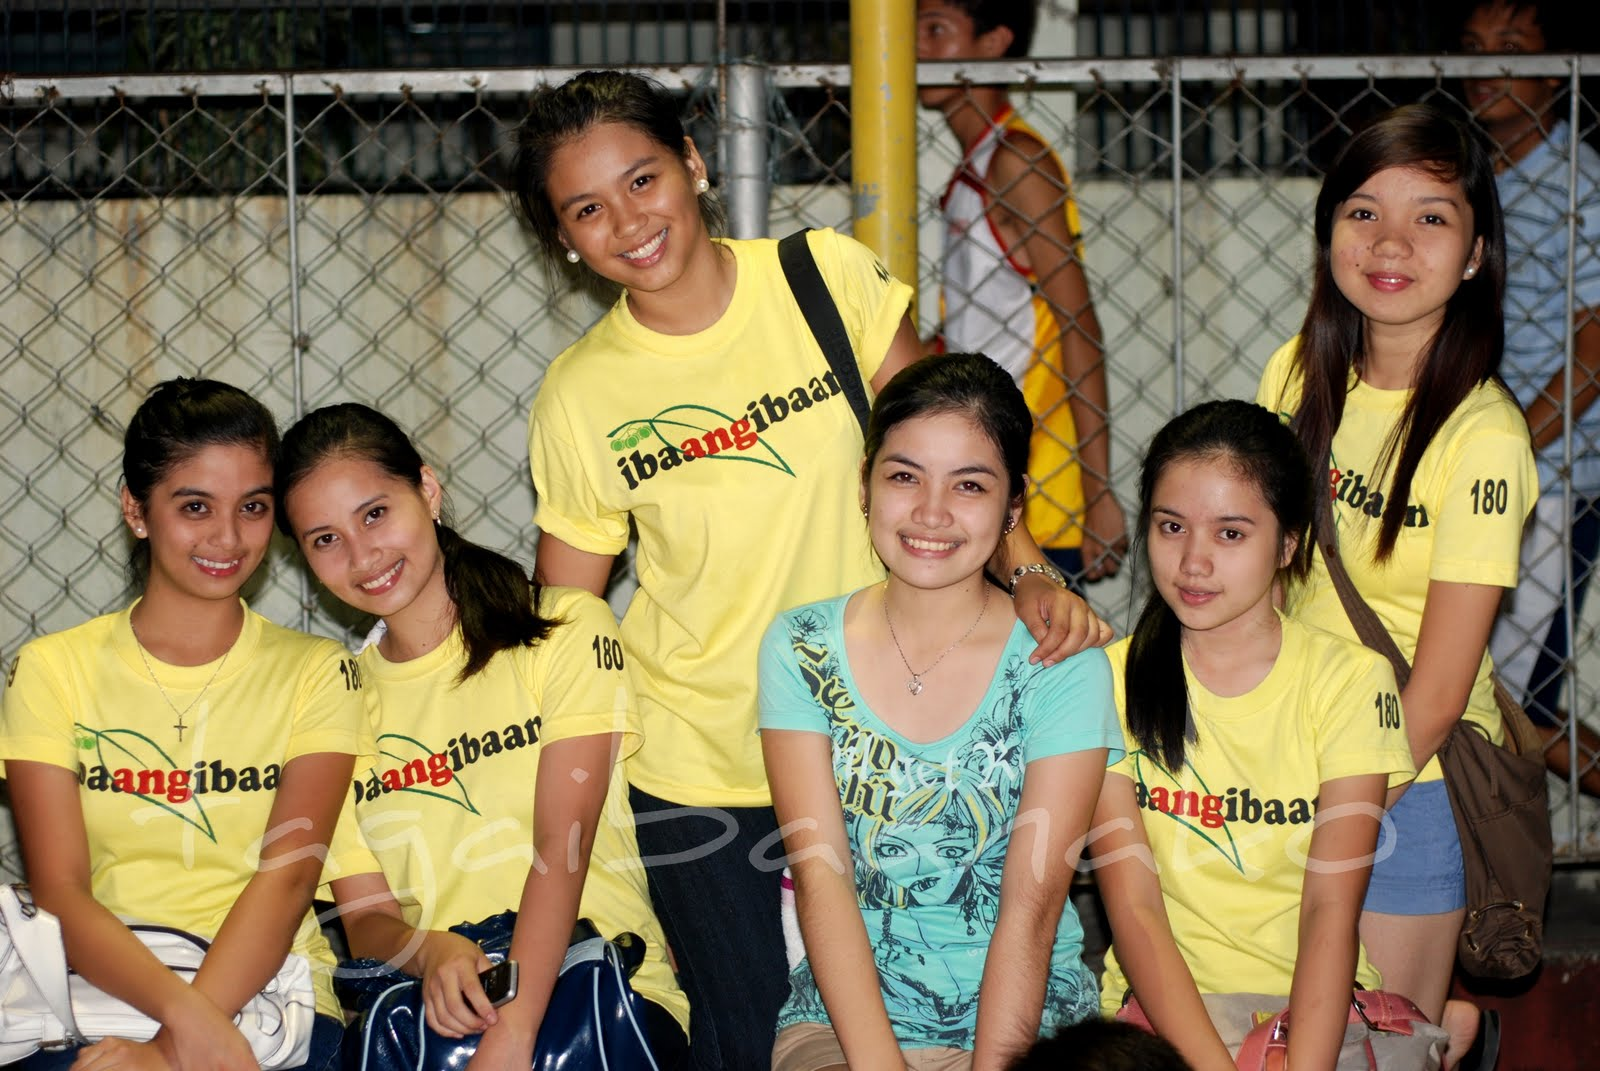 Some Mutya Ng Ibaan 2012 Candidates At Game 2 of San Agustin vs. Poblacion Championship Basketball Game in 2011.